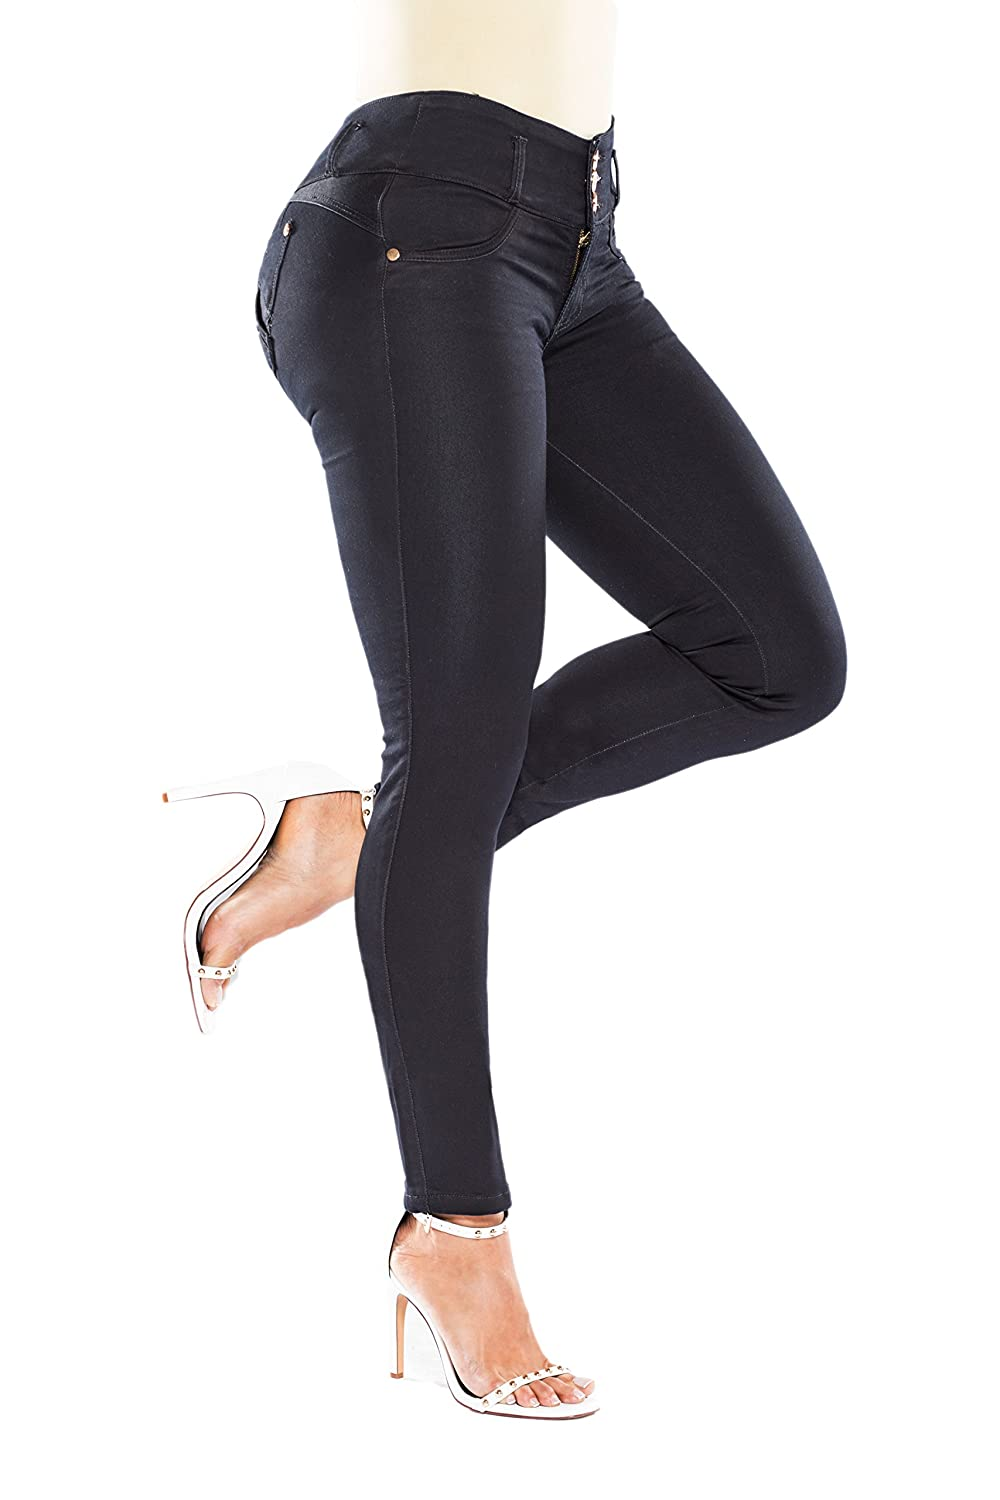 60a86901fd245 Traffic Stoppers  Get That Sexy Perky Butt (Naturally!) with the Curvify  837 High Waisted Butt Lifting Stretch Jeans  No padding